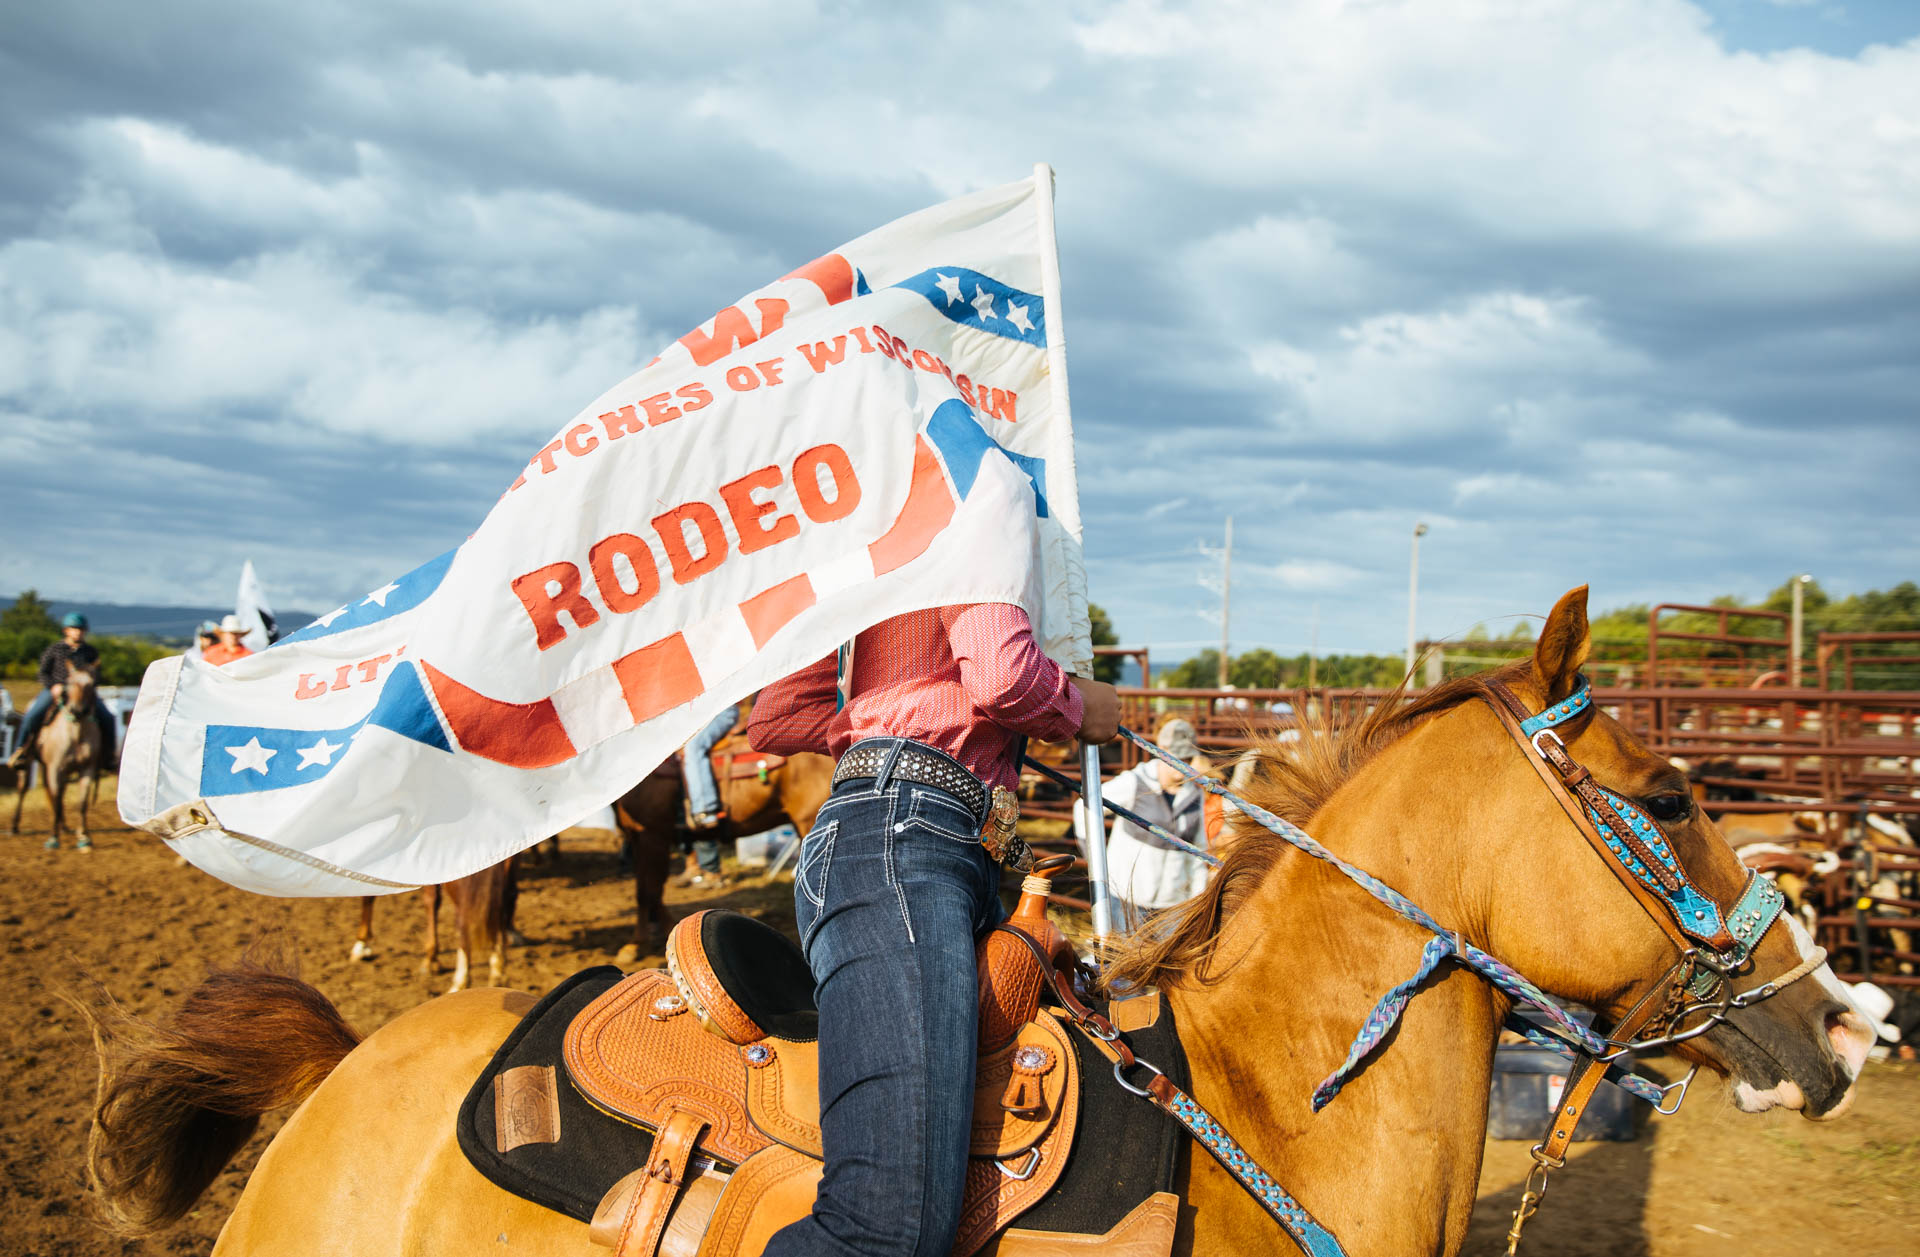 lbw-rodeo-flag-on-horse.JPG